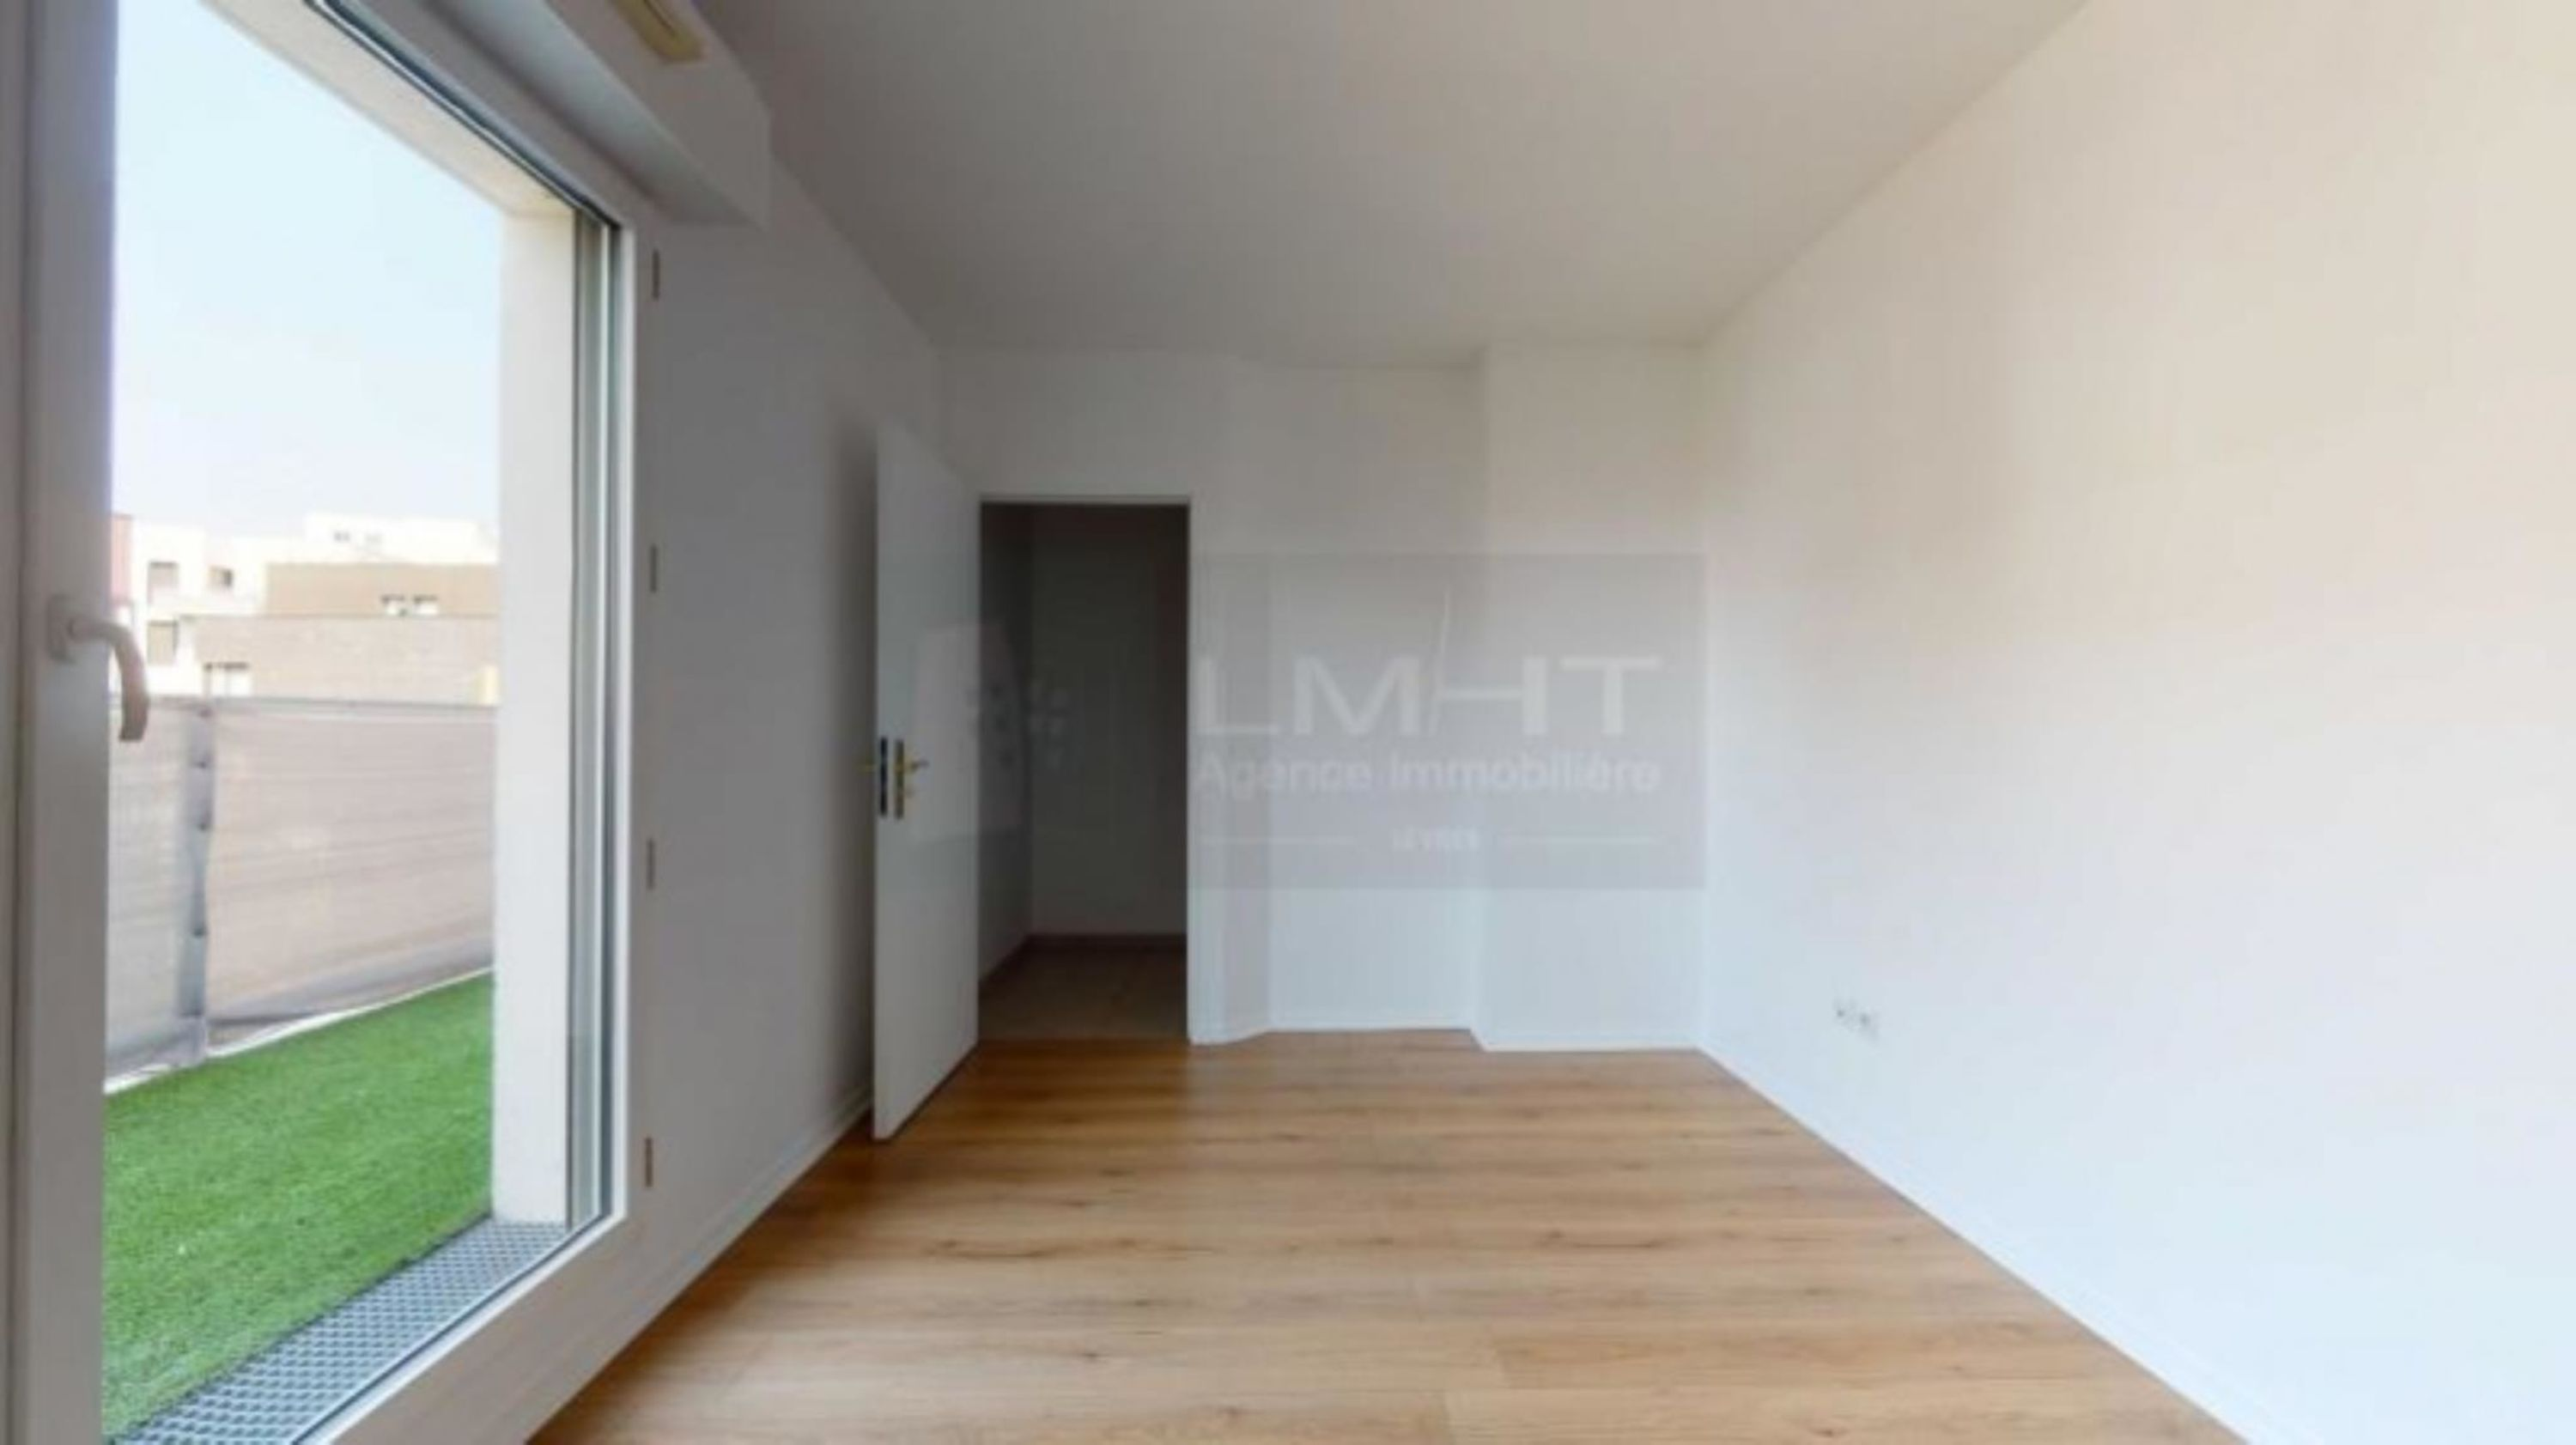 agence immobilière sevres 92 le chesnay 78 achat vente location appartement maison immobilier LMHT ANF PRUCPEPR